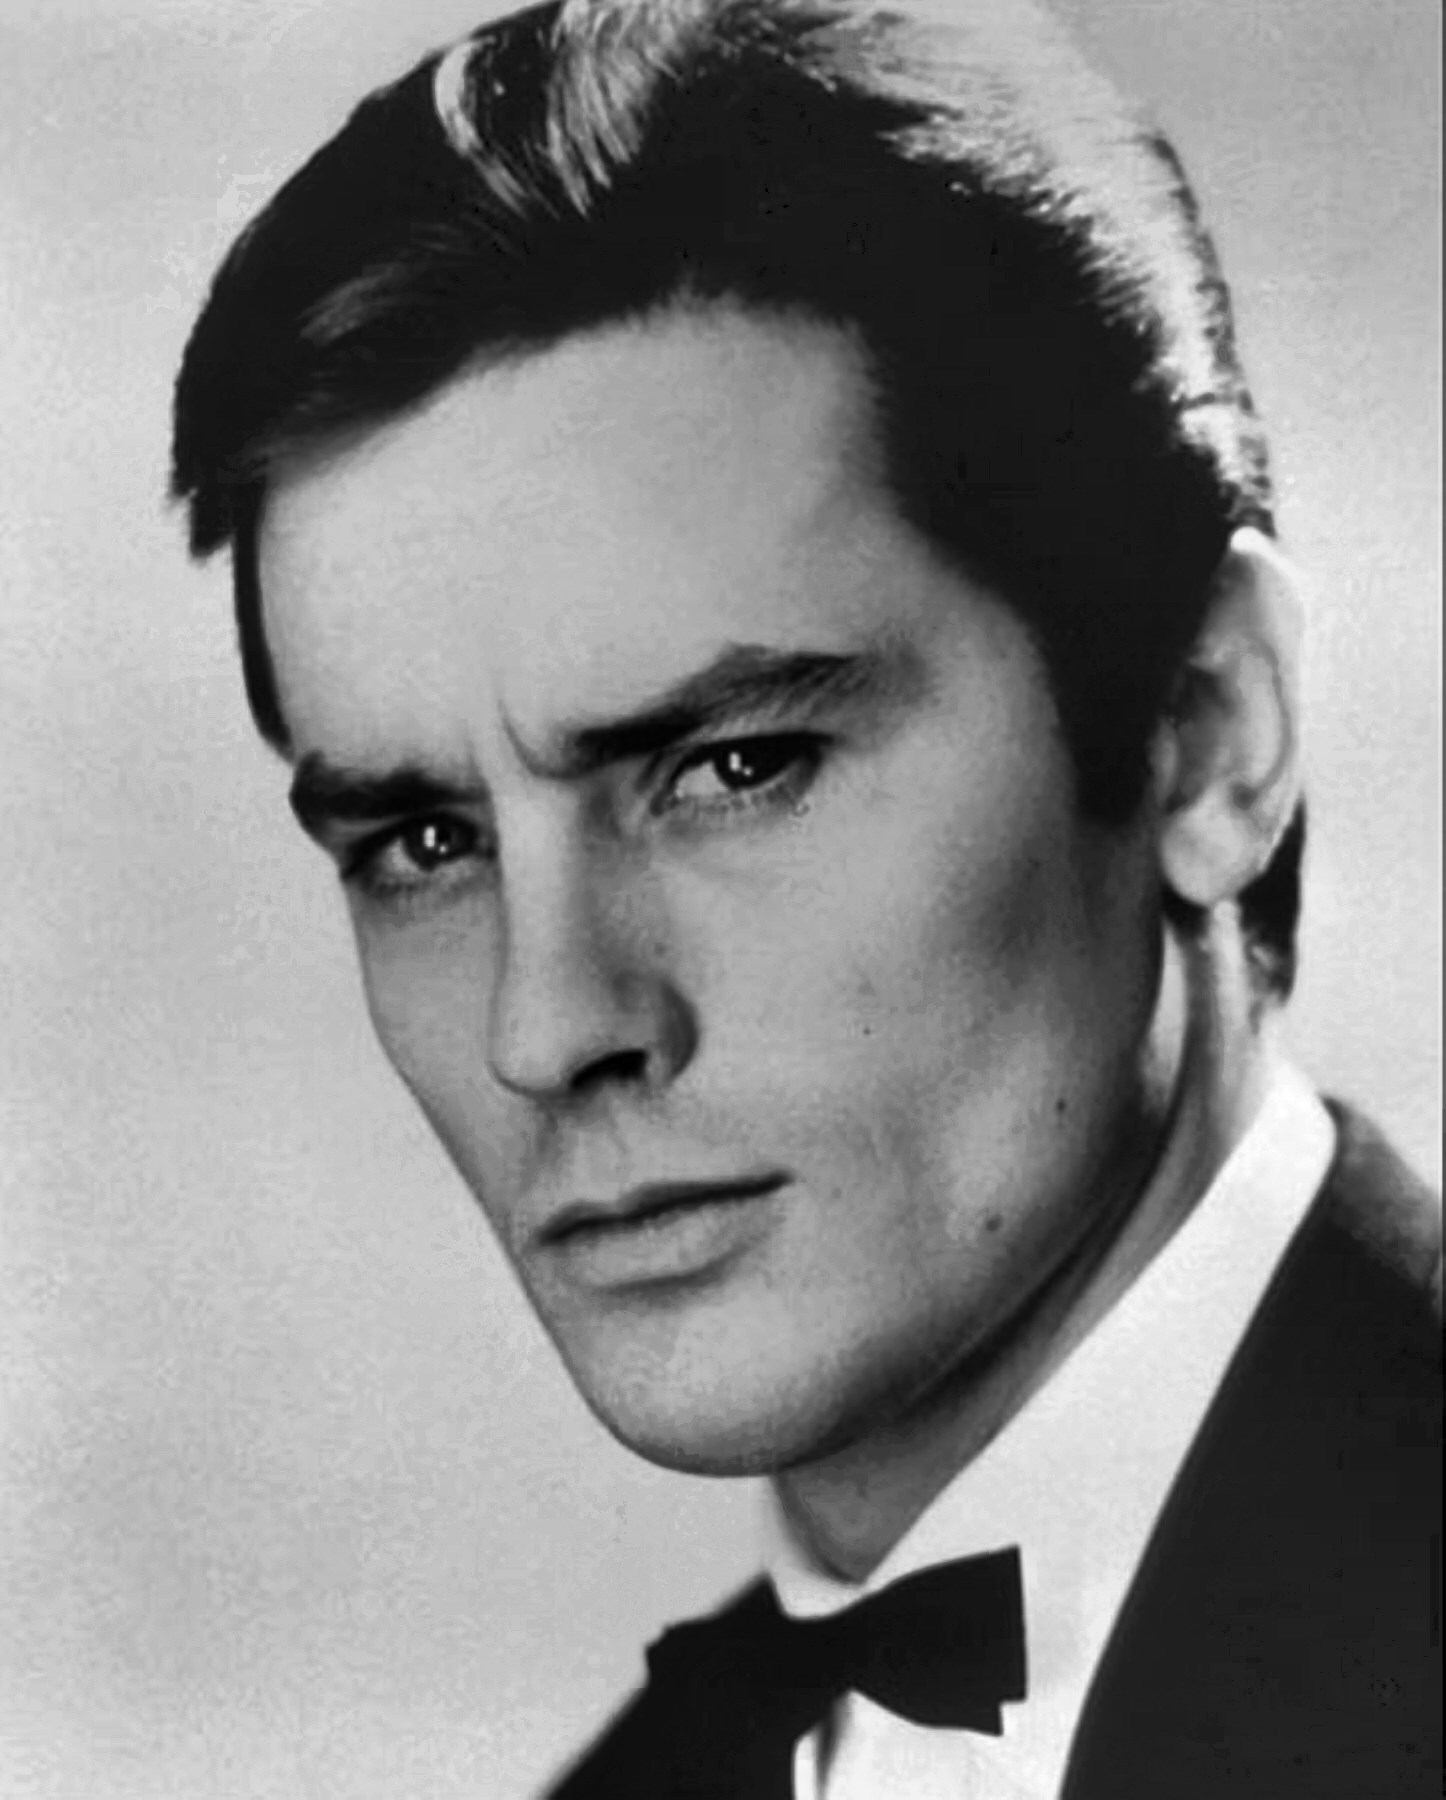 Classify this film icon: Alain Delon